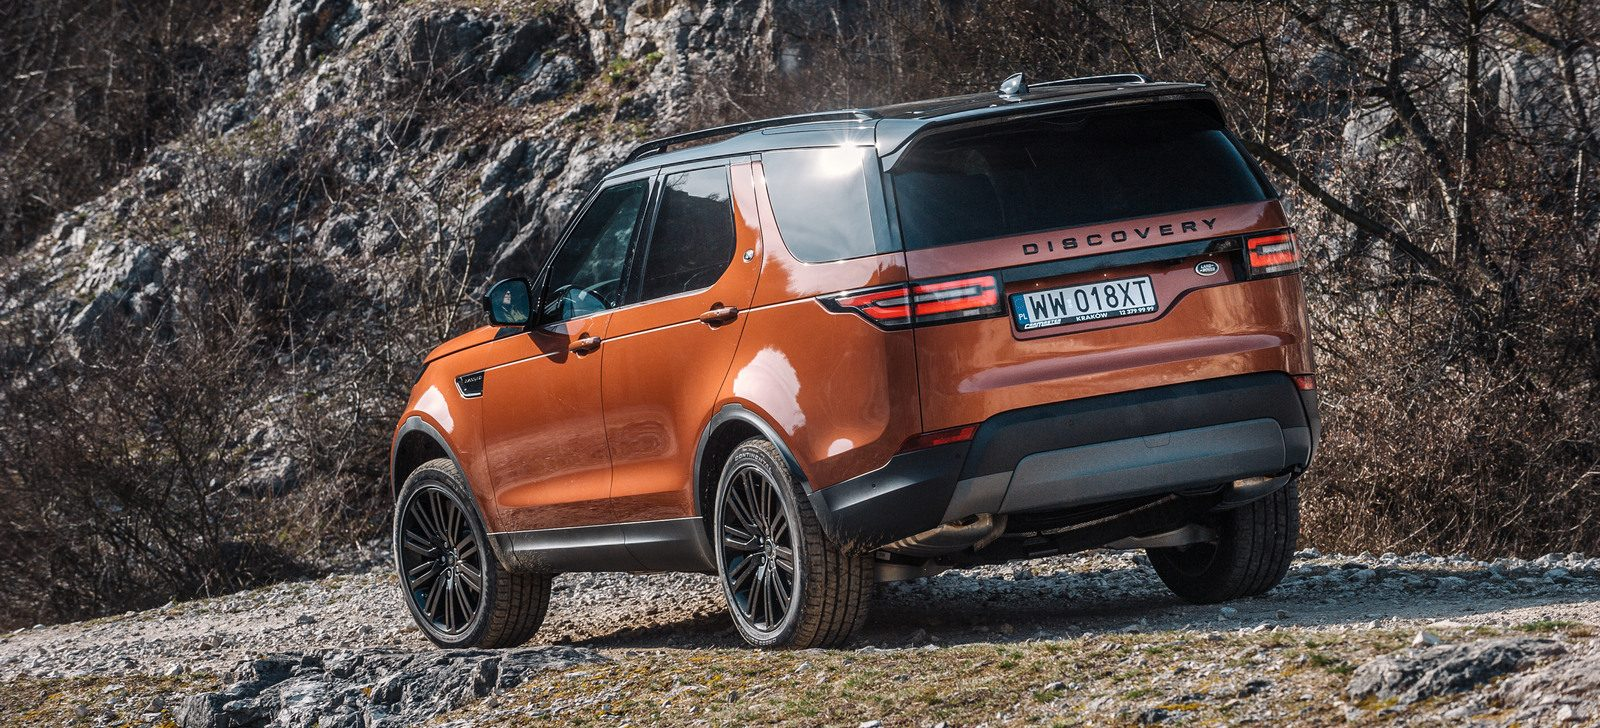 land rover discovery V - test i opinia